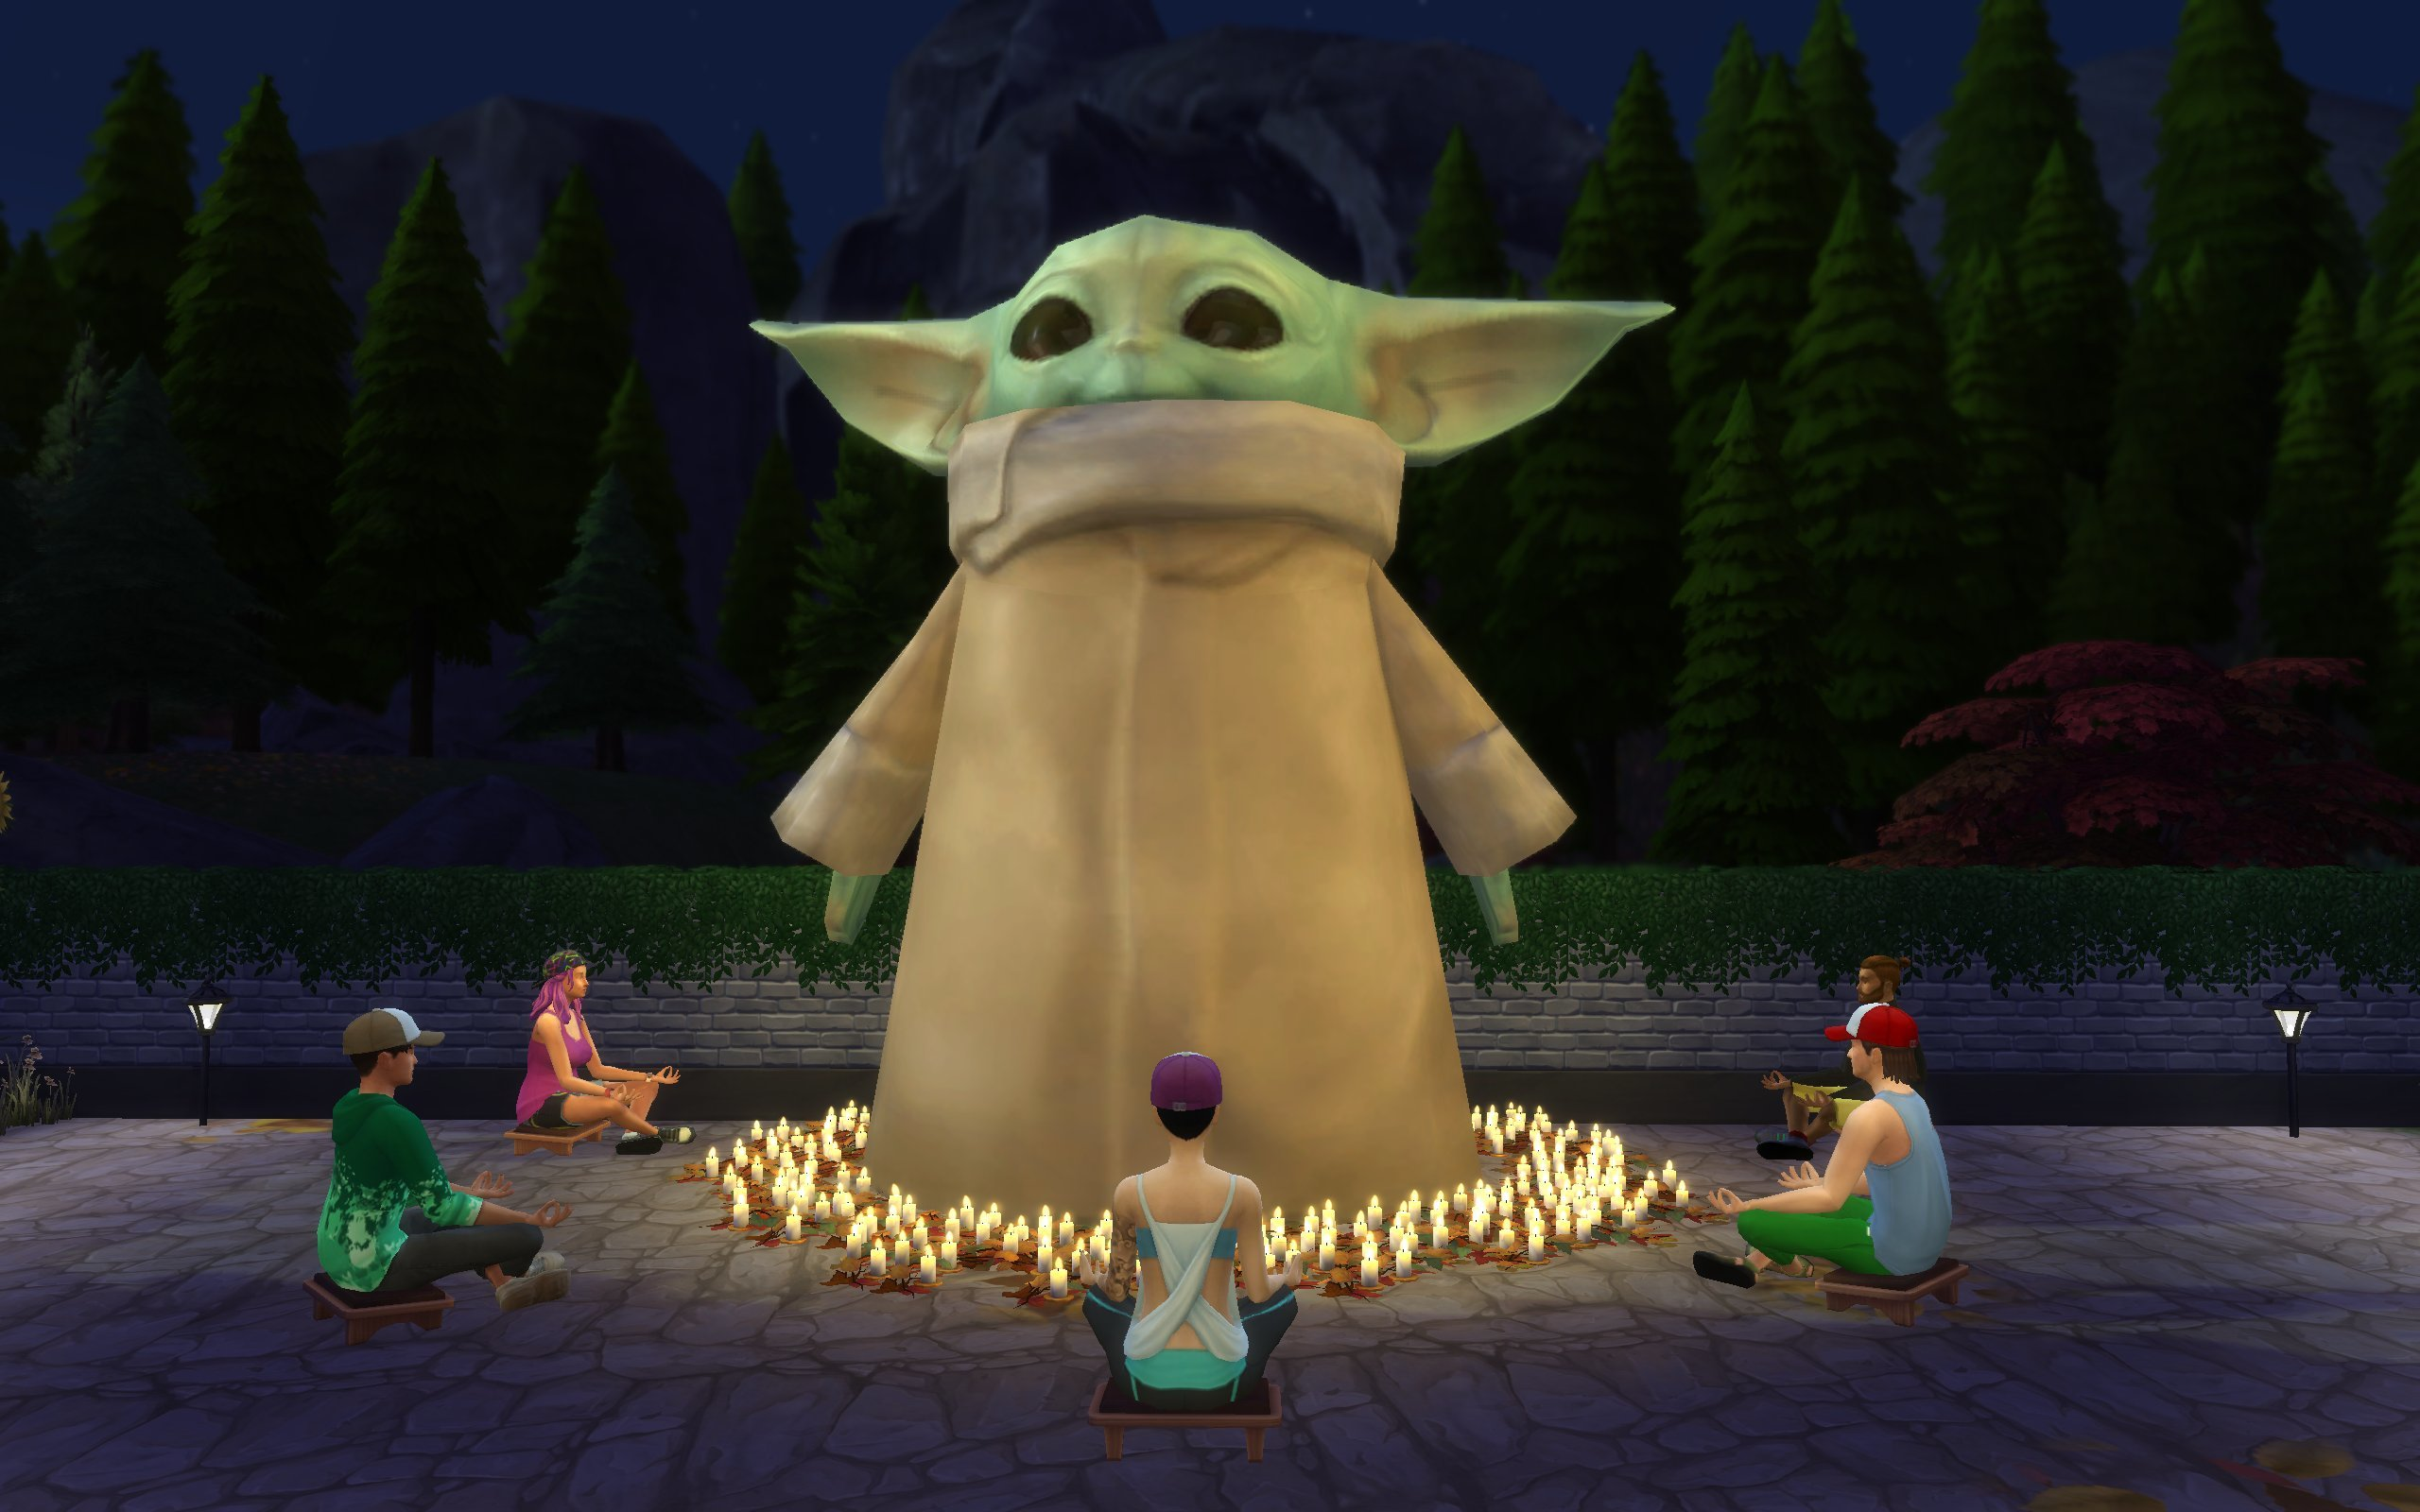 The Sims 4 Introduces Baby Yoda Into The Game